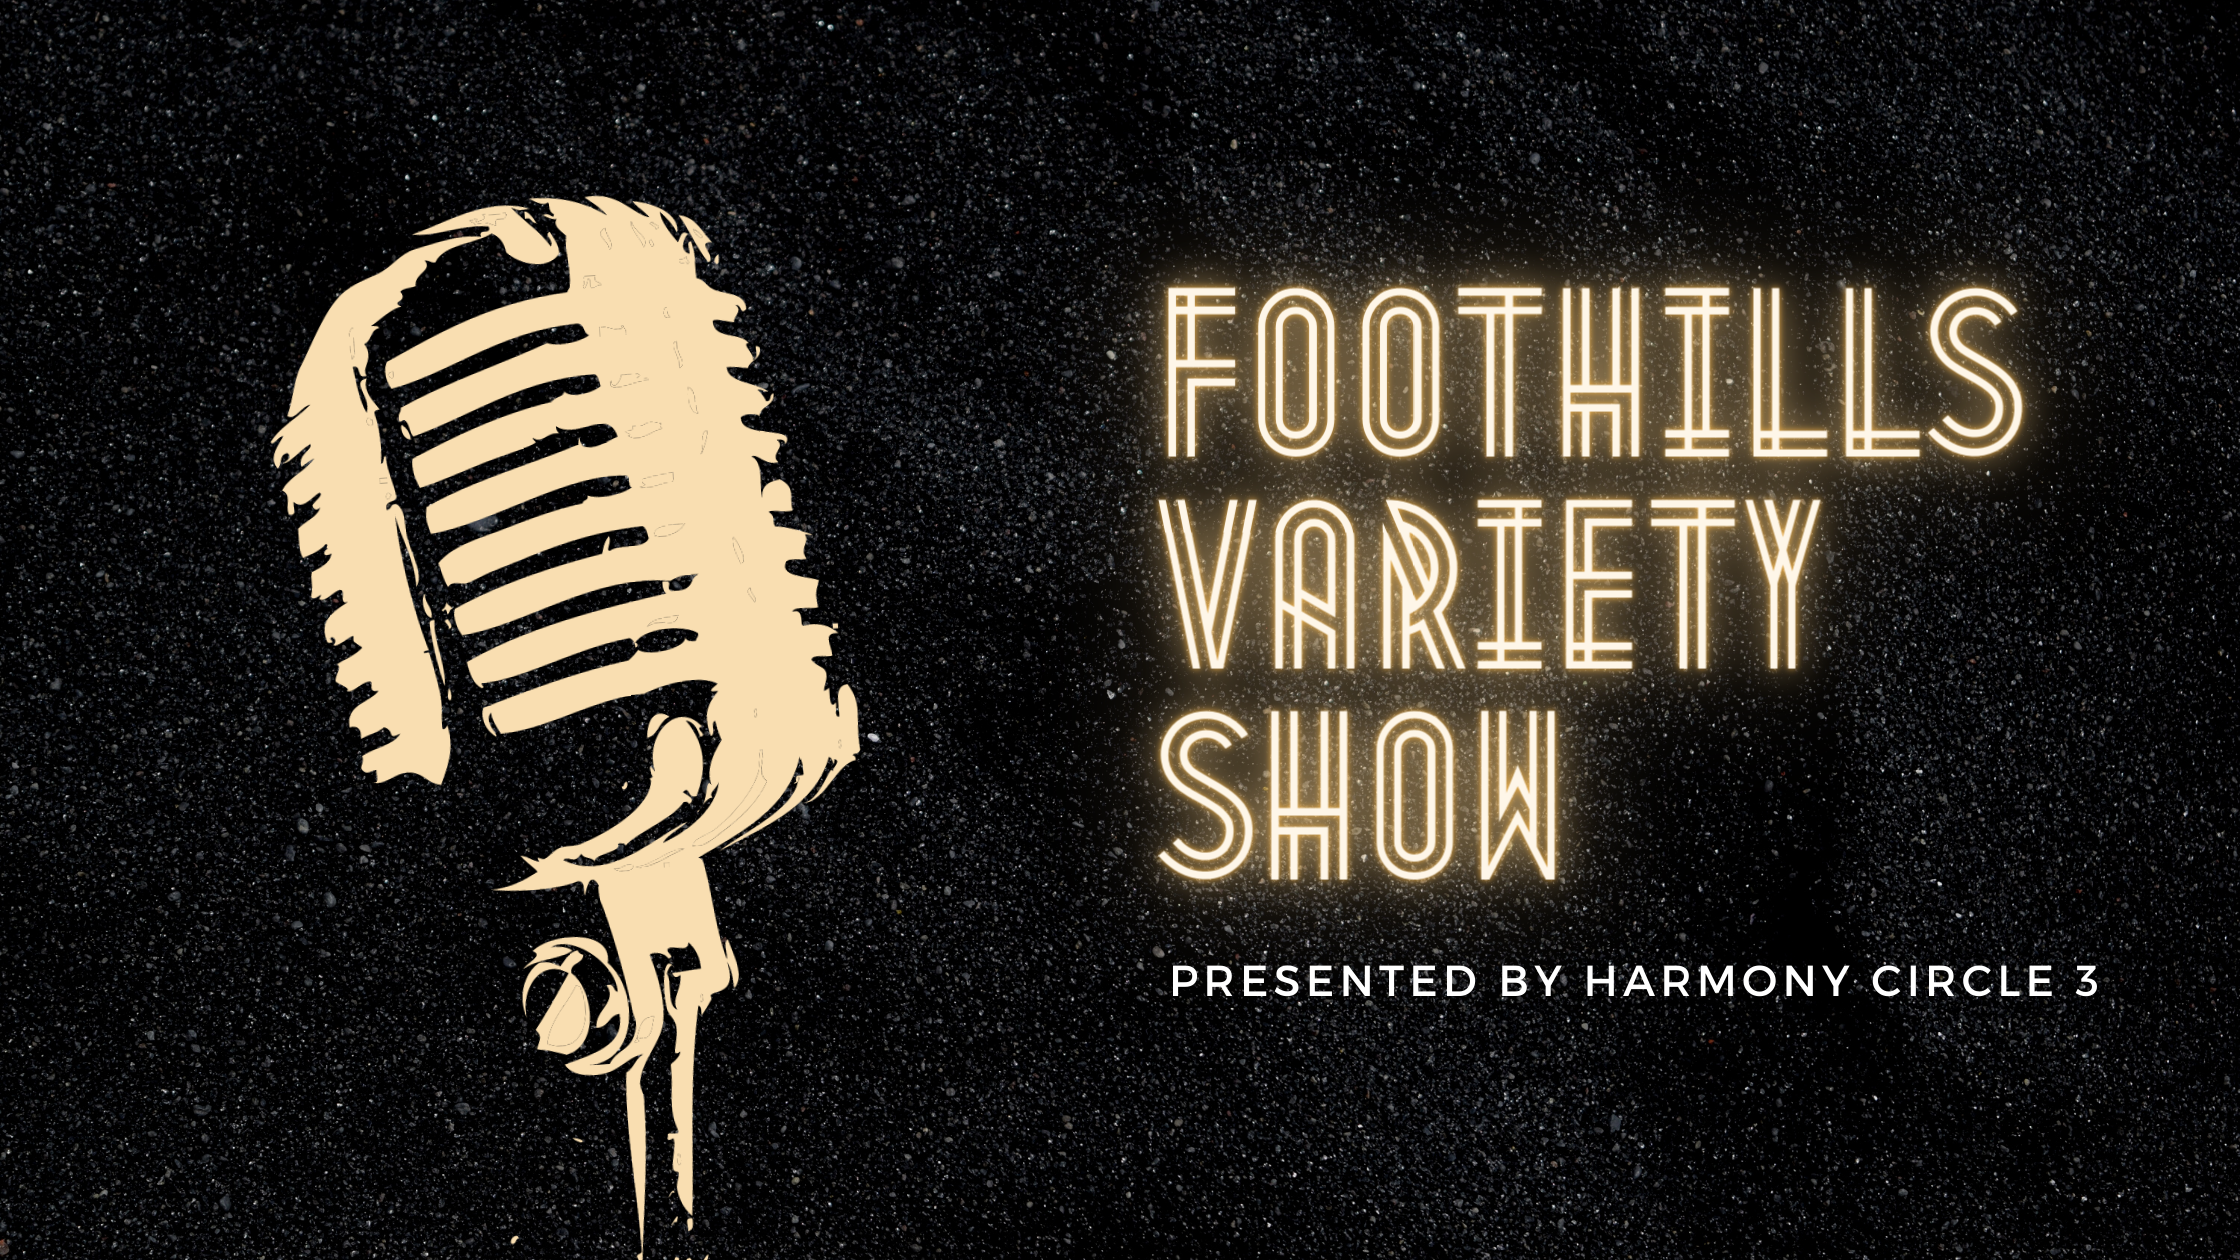 Foothills Variety Show!